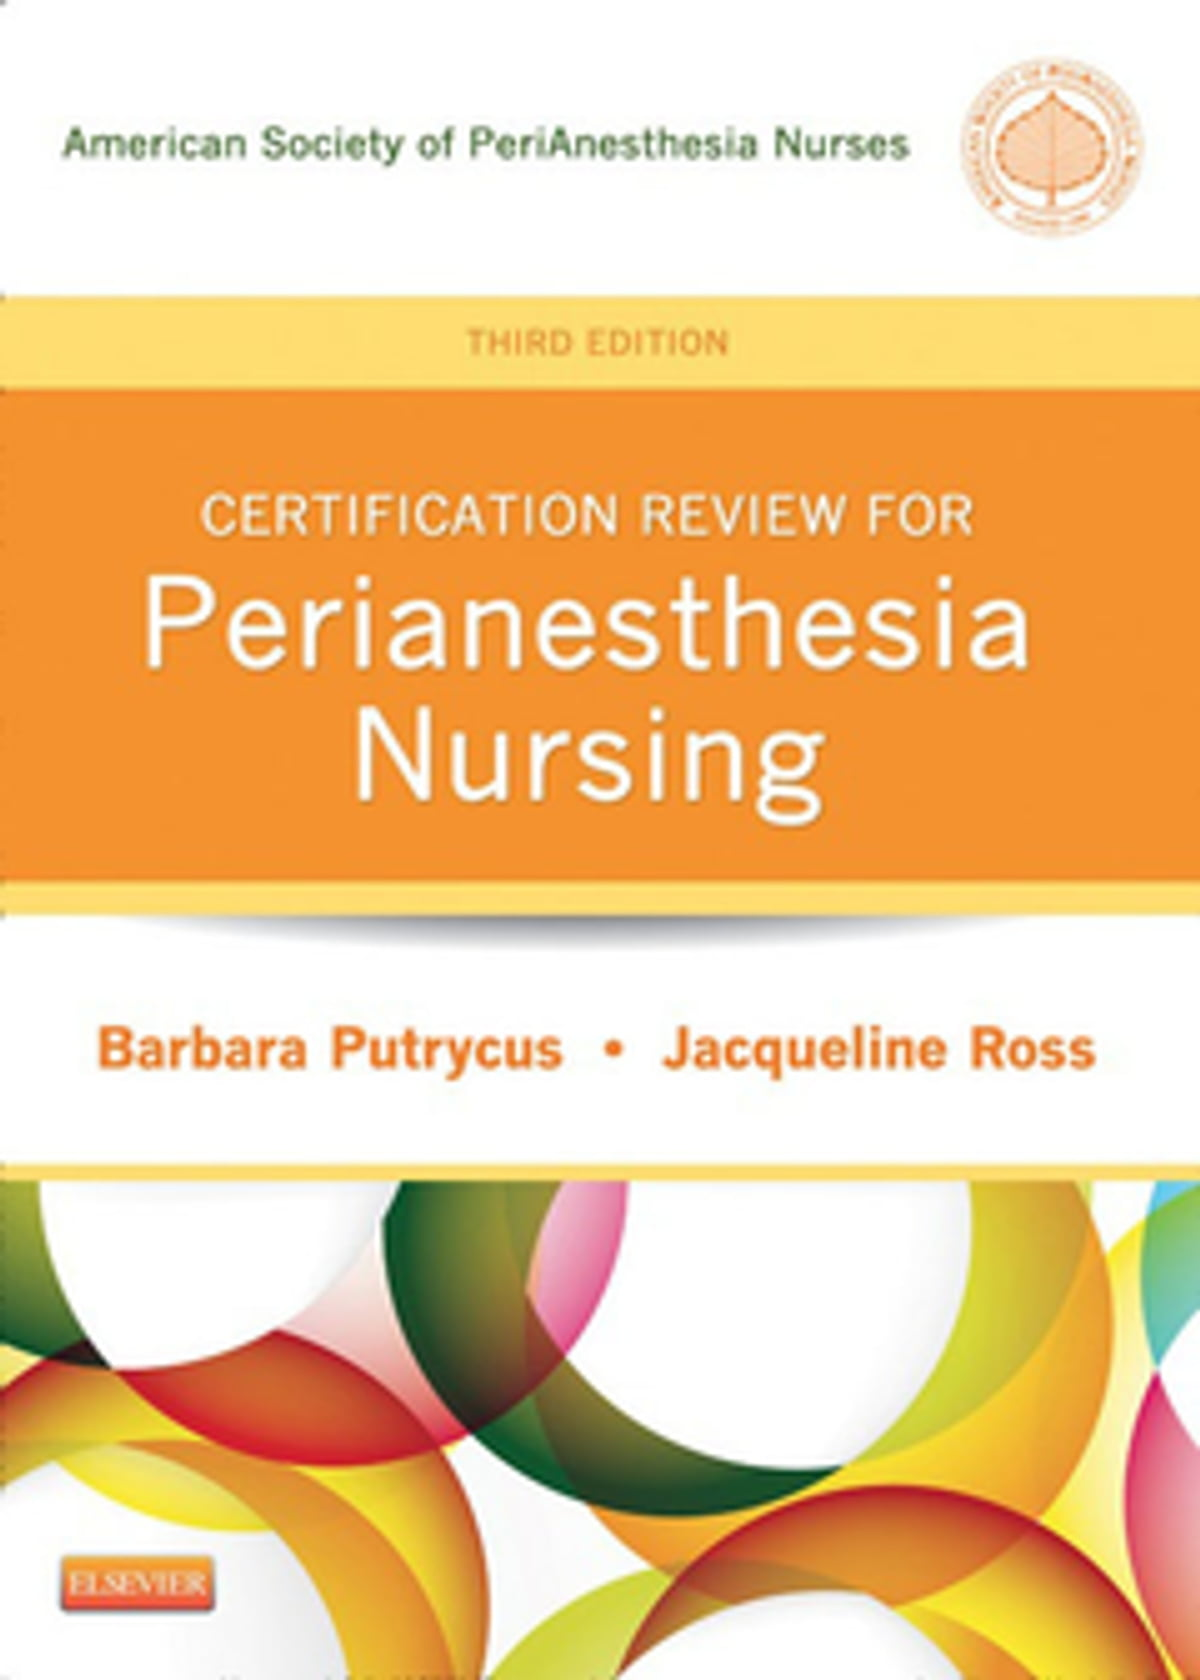 Certification Review For Perianesthesia Nursing E Book Ebook By